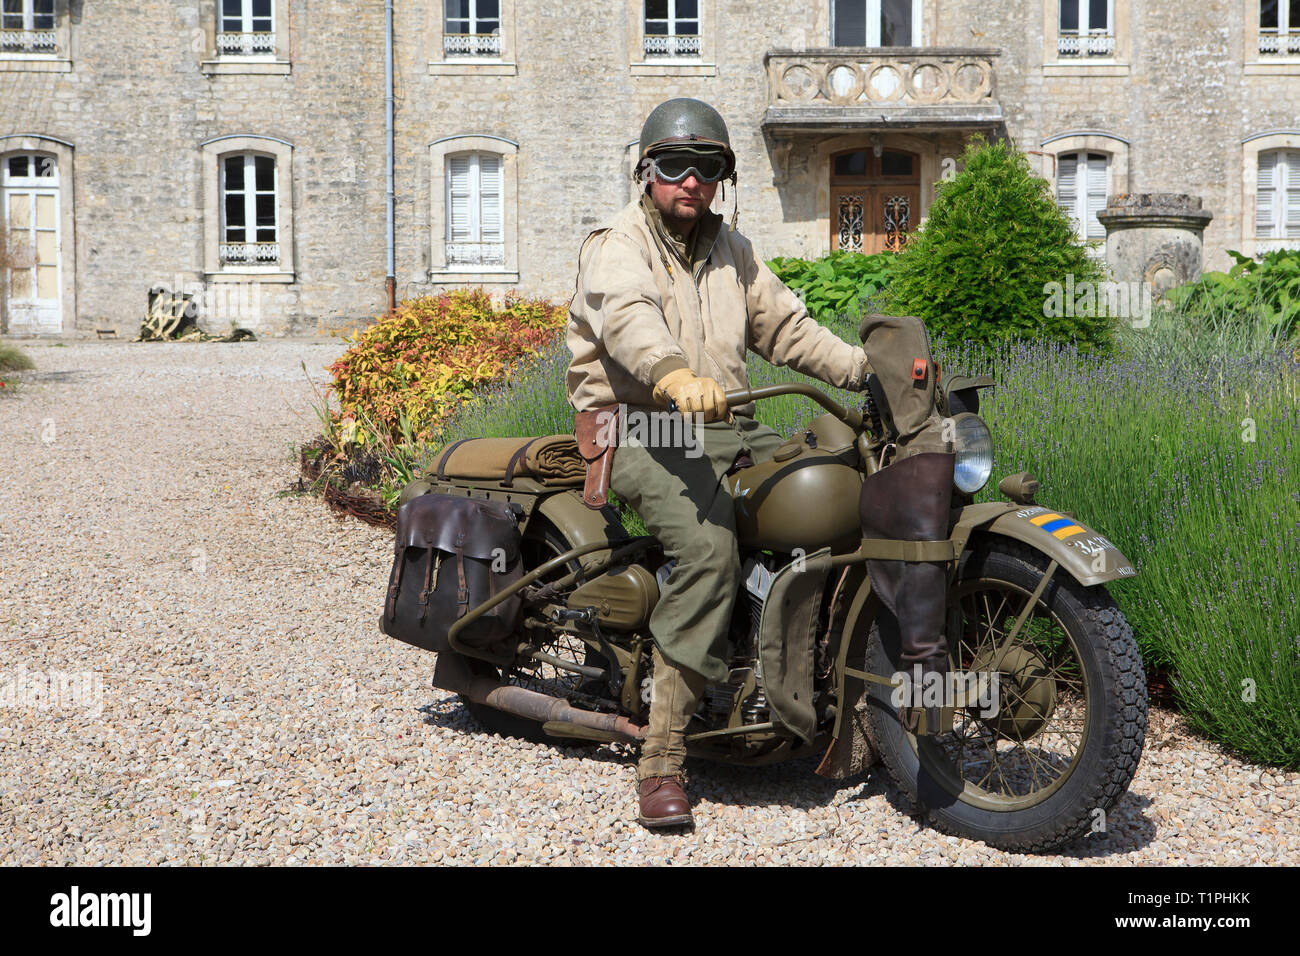 A private of the 101st Airborne Divison of the US army on a Liberator Harley Davidson motorcyle during the D-Day celebrations in Normandy, France - Stock Image